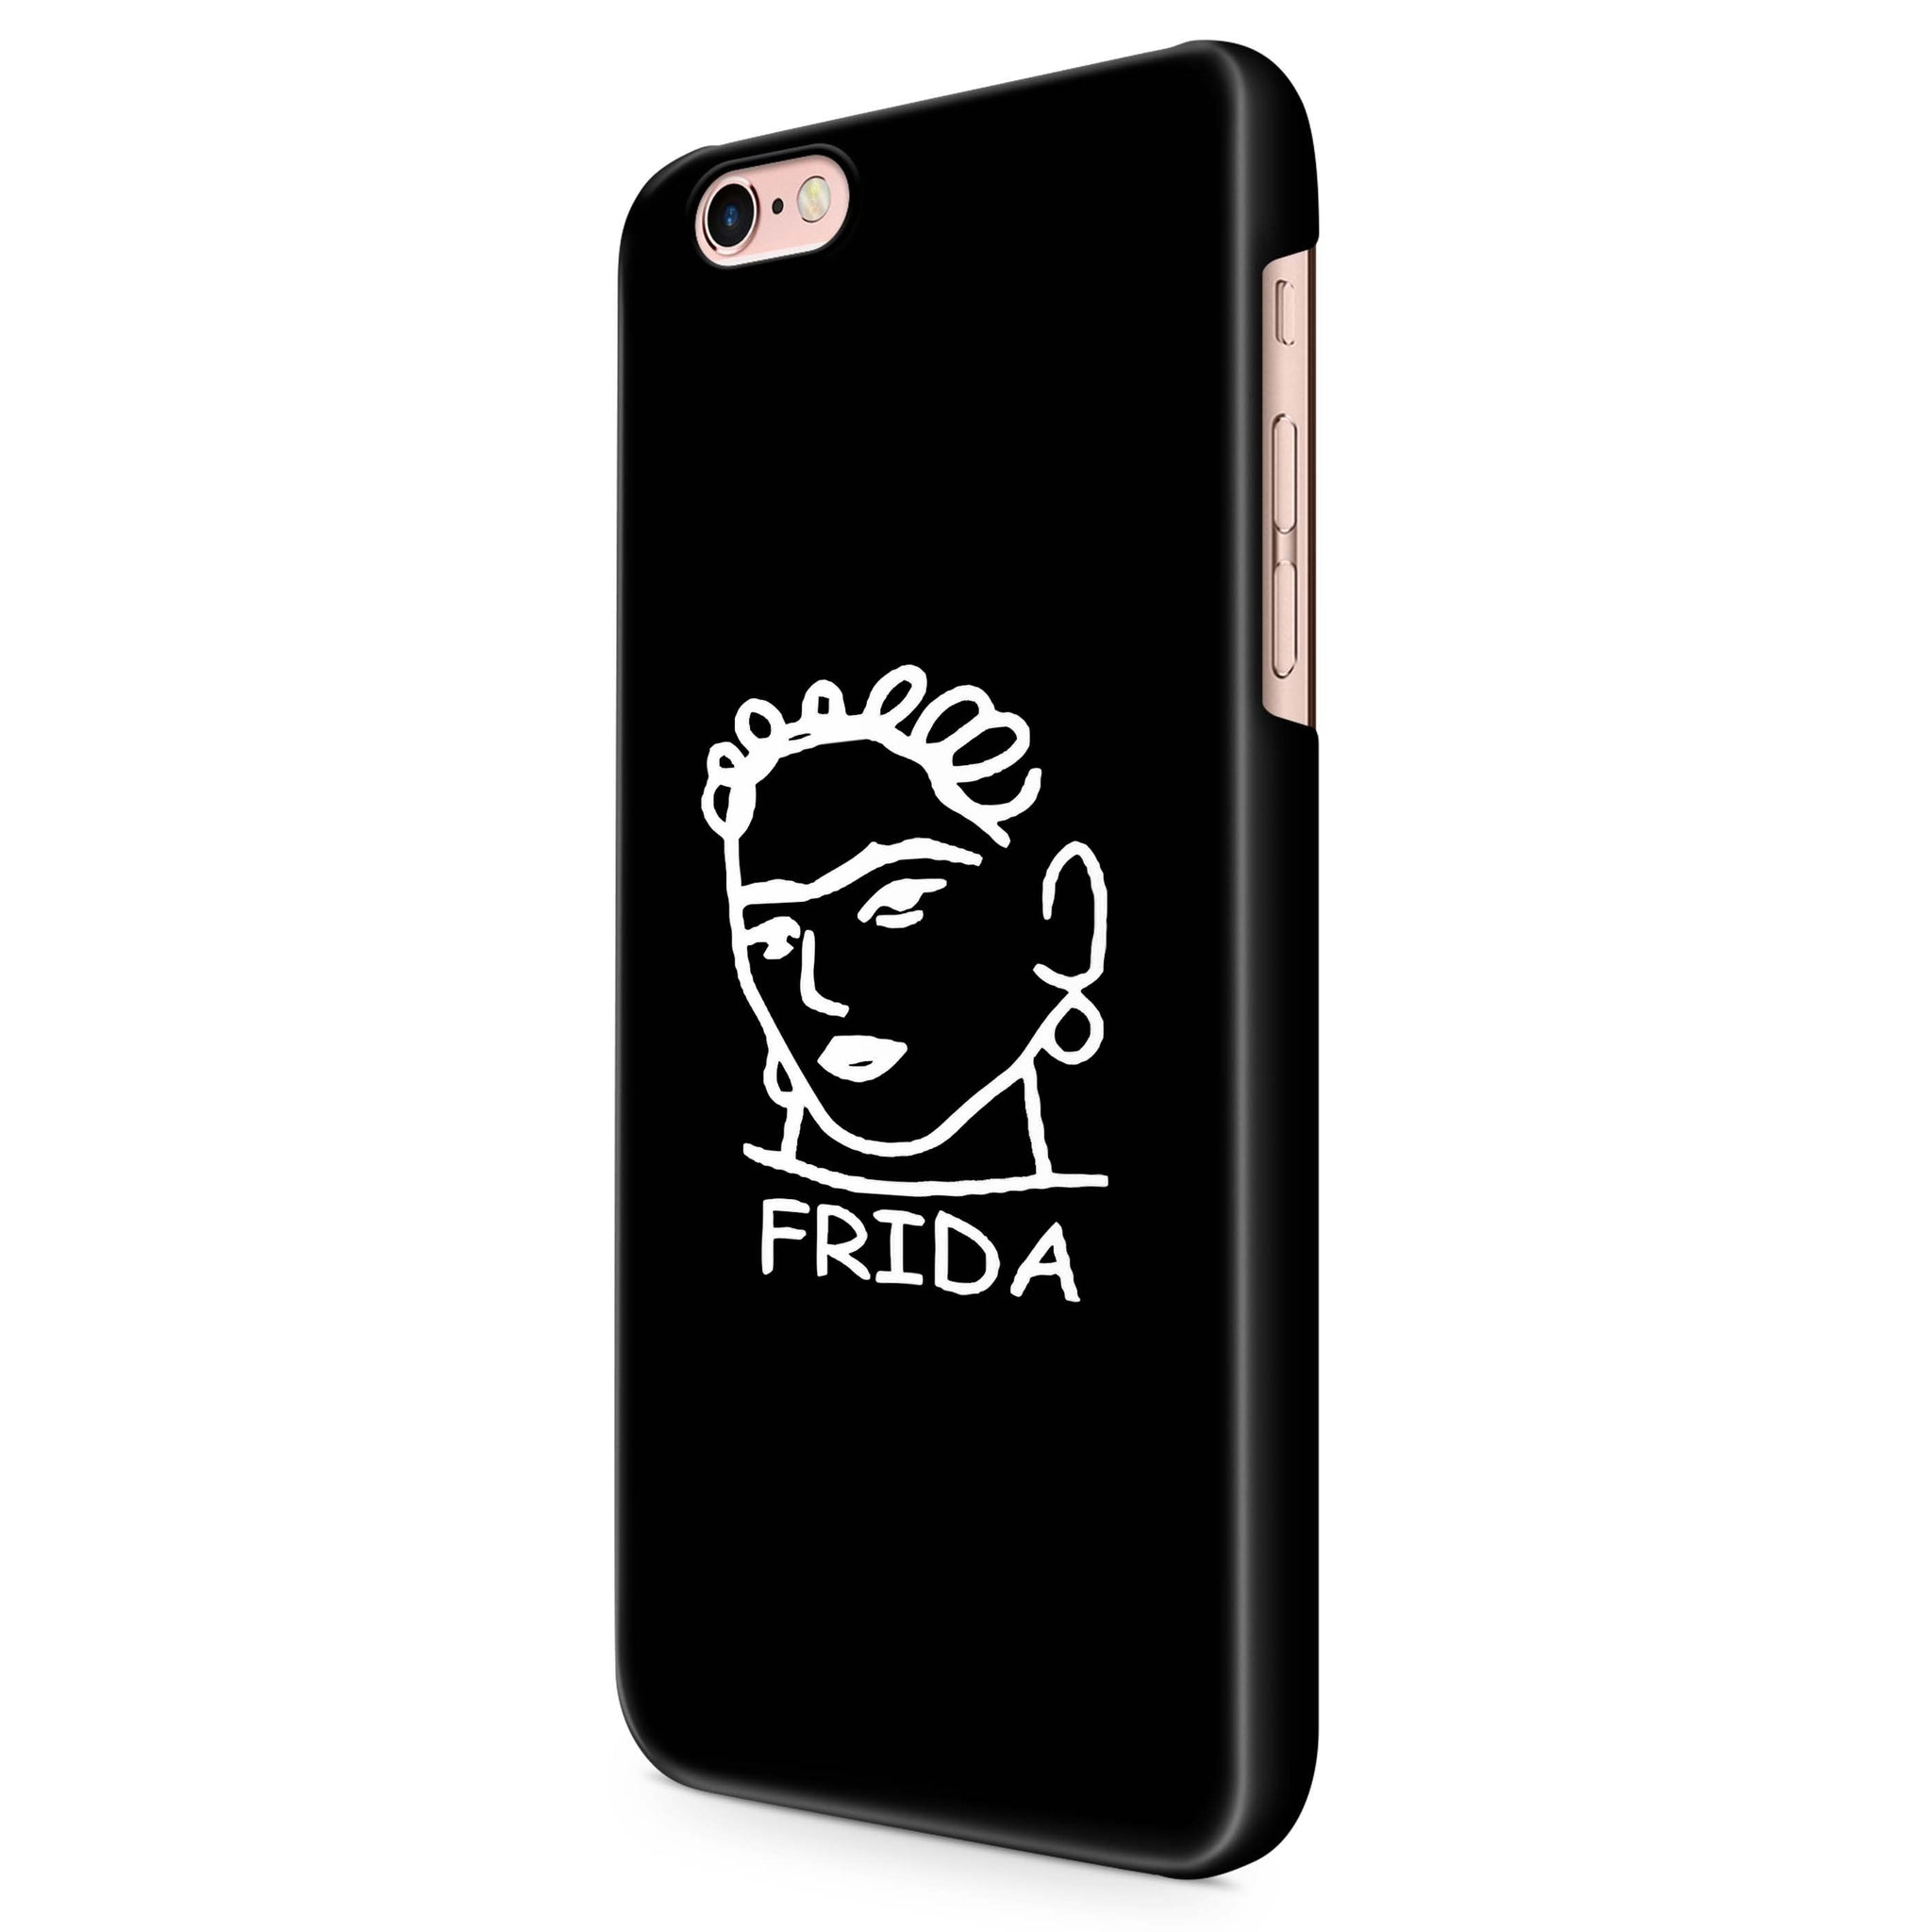 Frida Kahlo iPhone 5 / 5S | 6 / 6S | 6 Plus / 6S Plus 3D Case